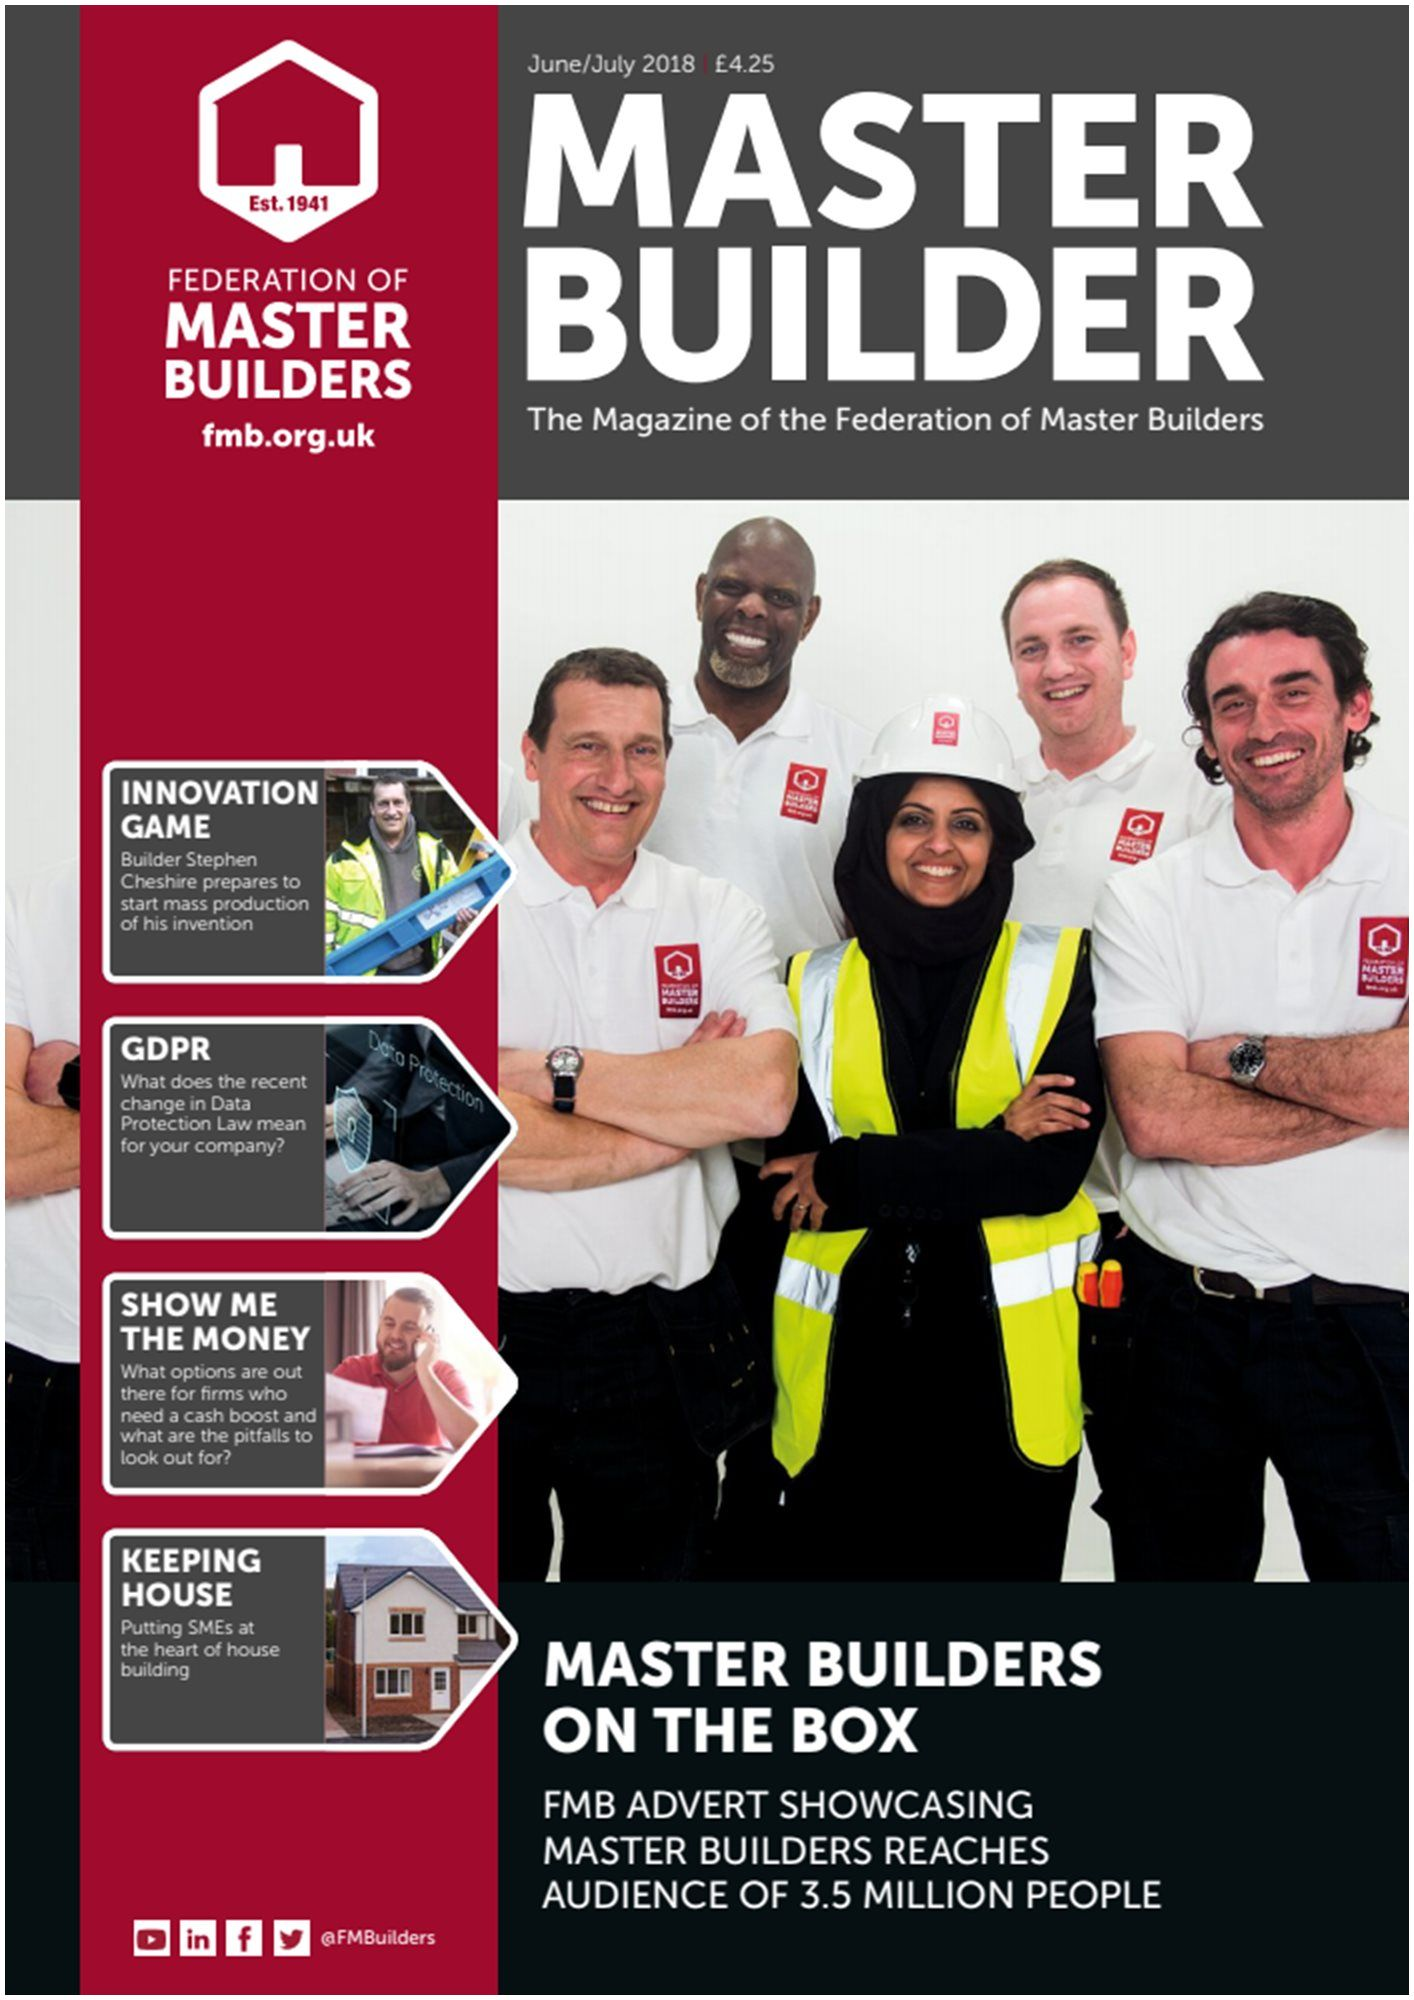 Business and Focus Magazine Master Builder June July 2018